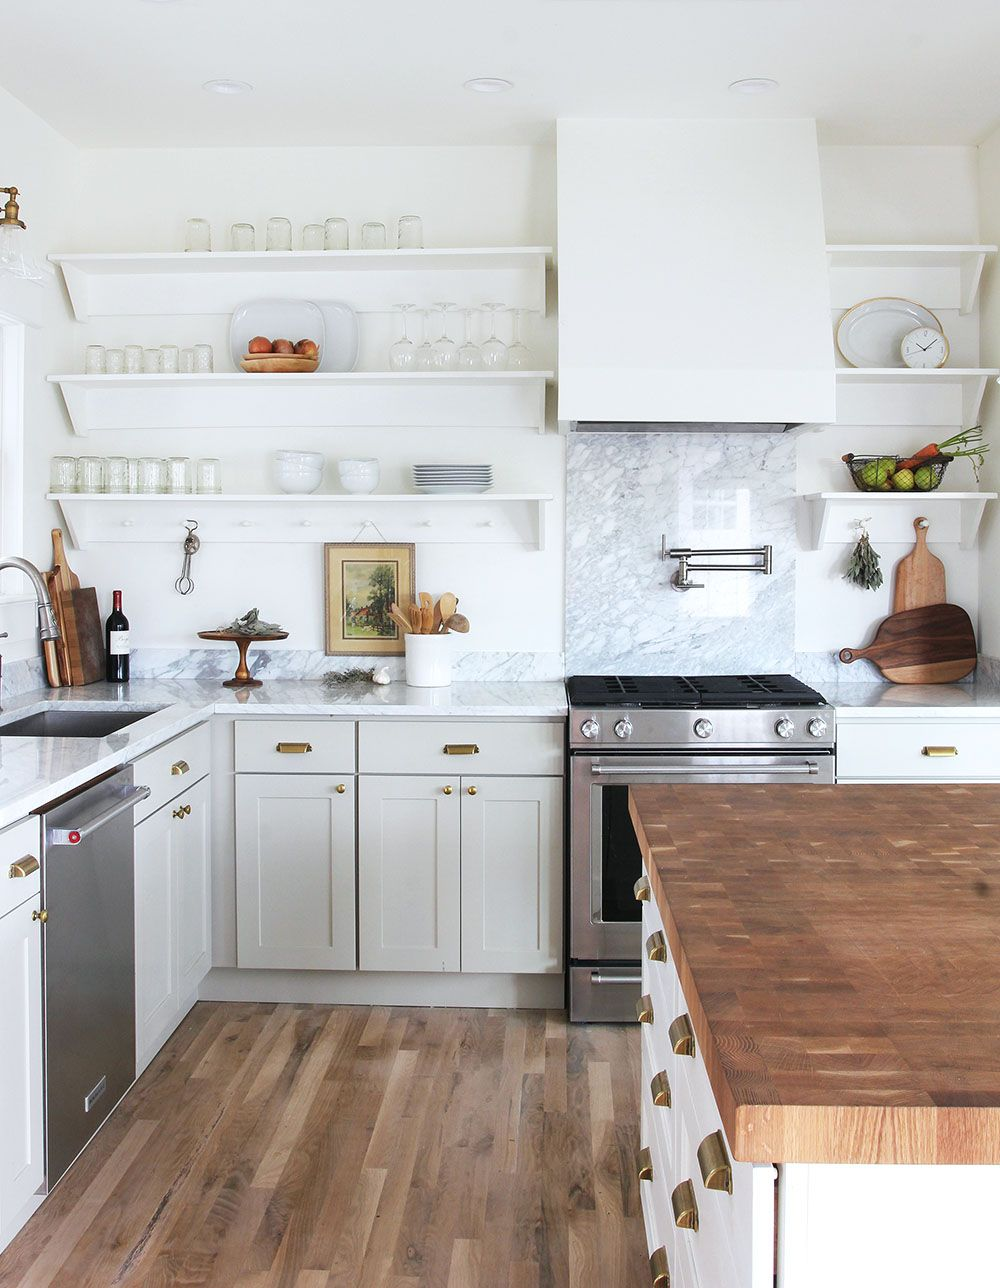 8 Great Neutral Cabinet Colors For Kitchens The Grit And Polish Country Kitchen Designs Neutral Kitchen Designs Kitchen Renovation